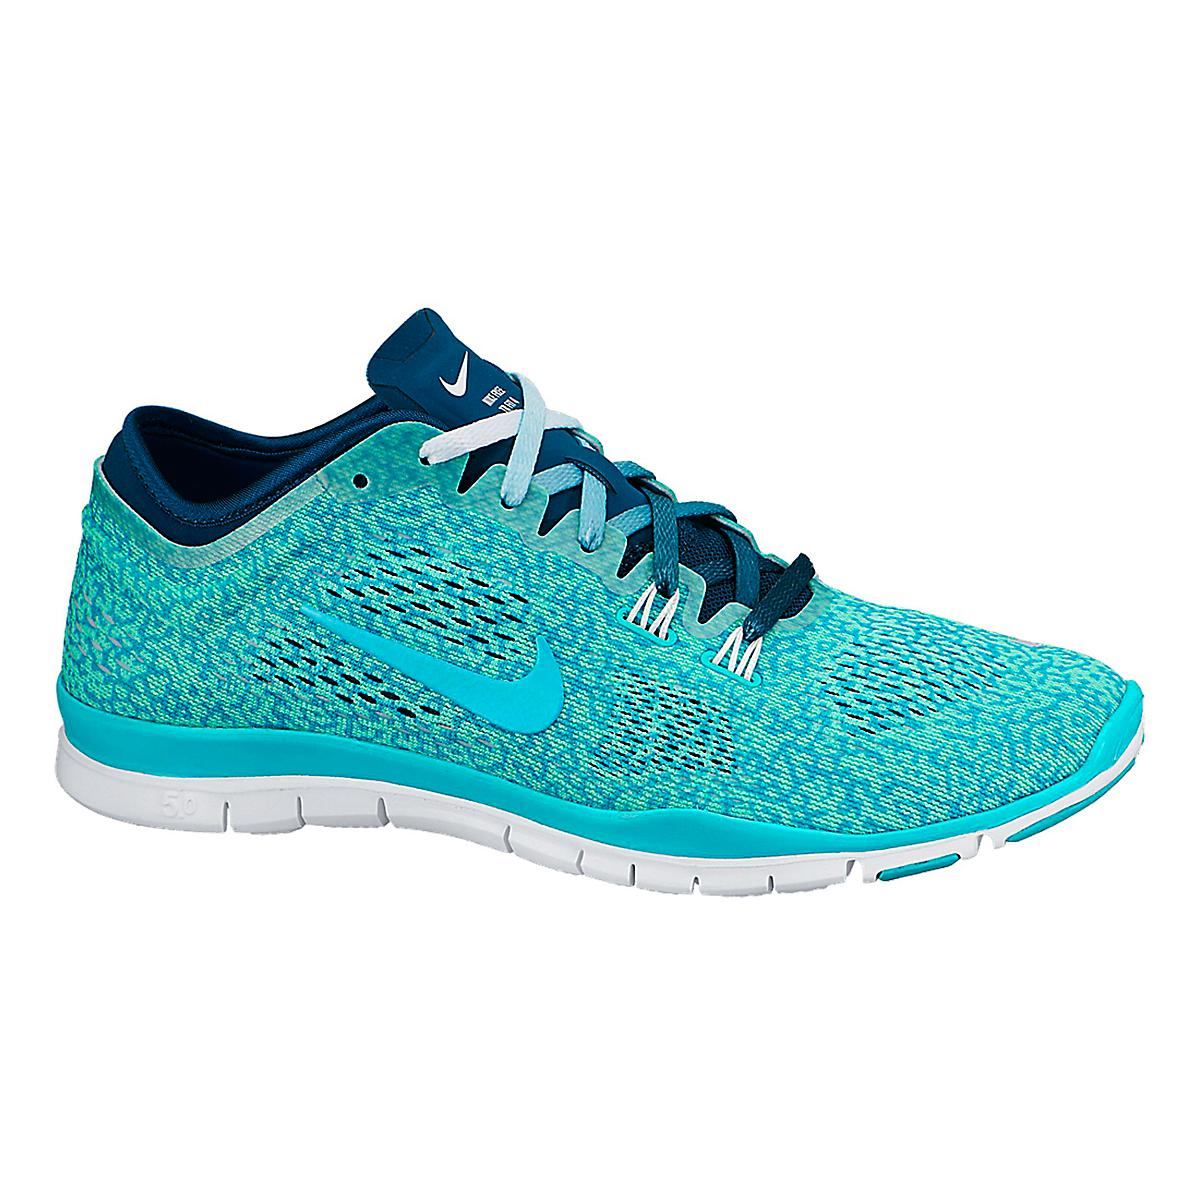 Womens Nike Free 5.0 TR Fit 4 Print Cross Training Shoe at Road Runner  Sports